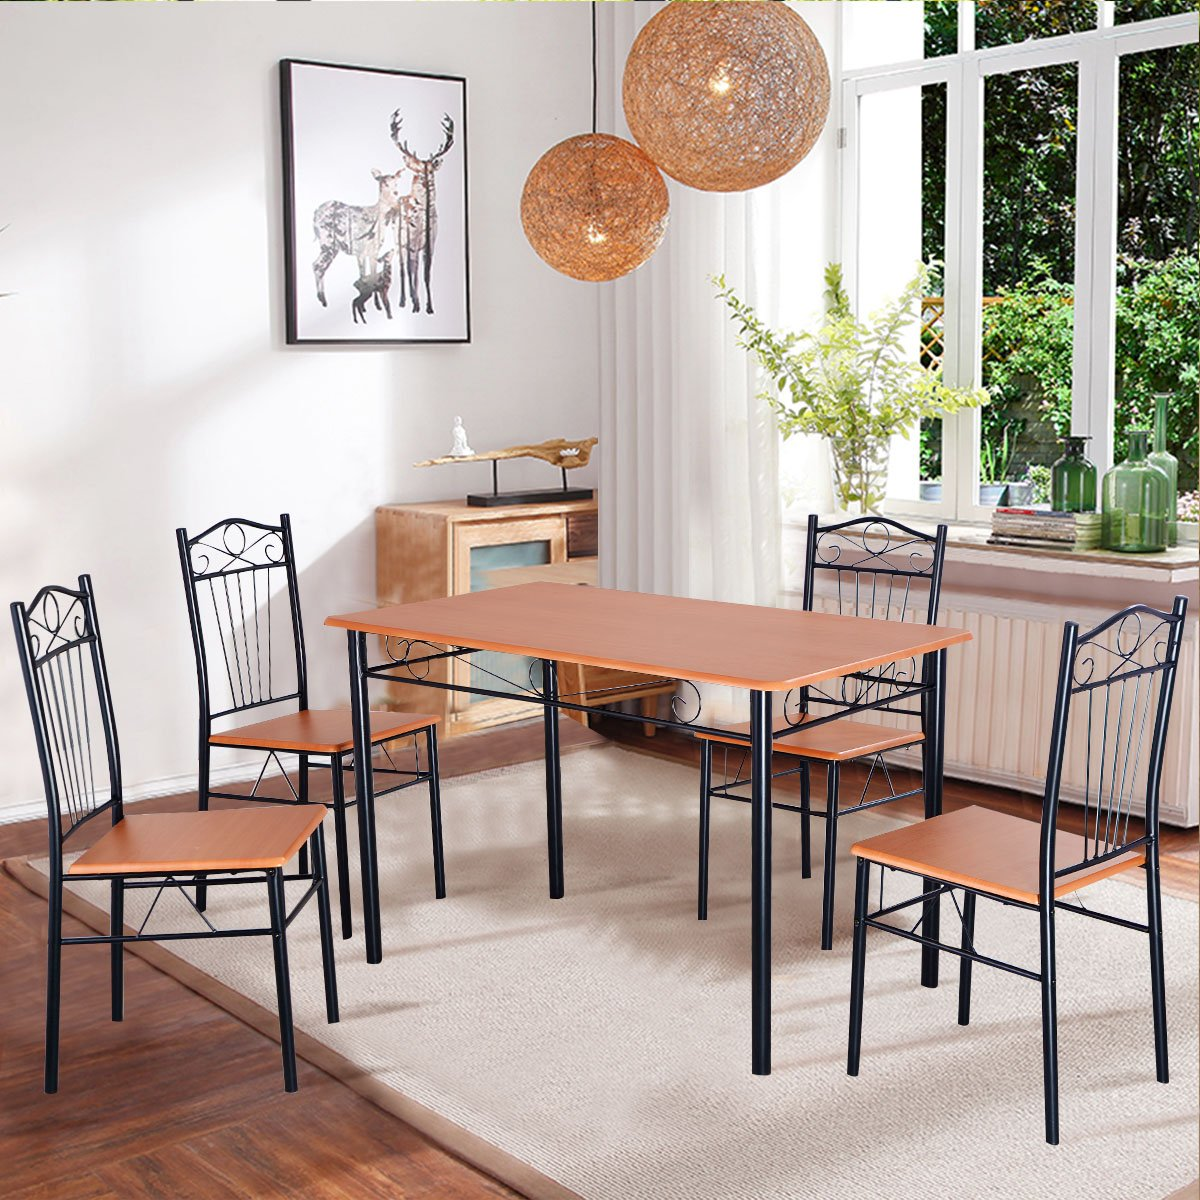 Amazon.com: Tangkula Steel Frame Dining Set Table and Chairs Kitchen ...